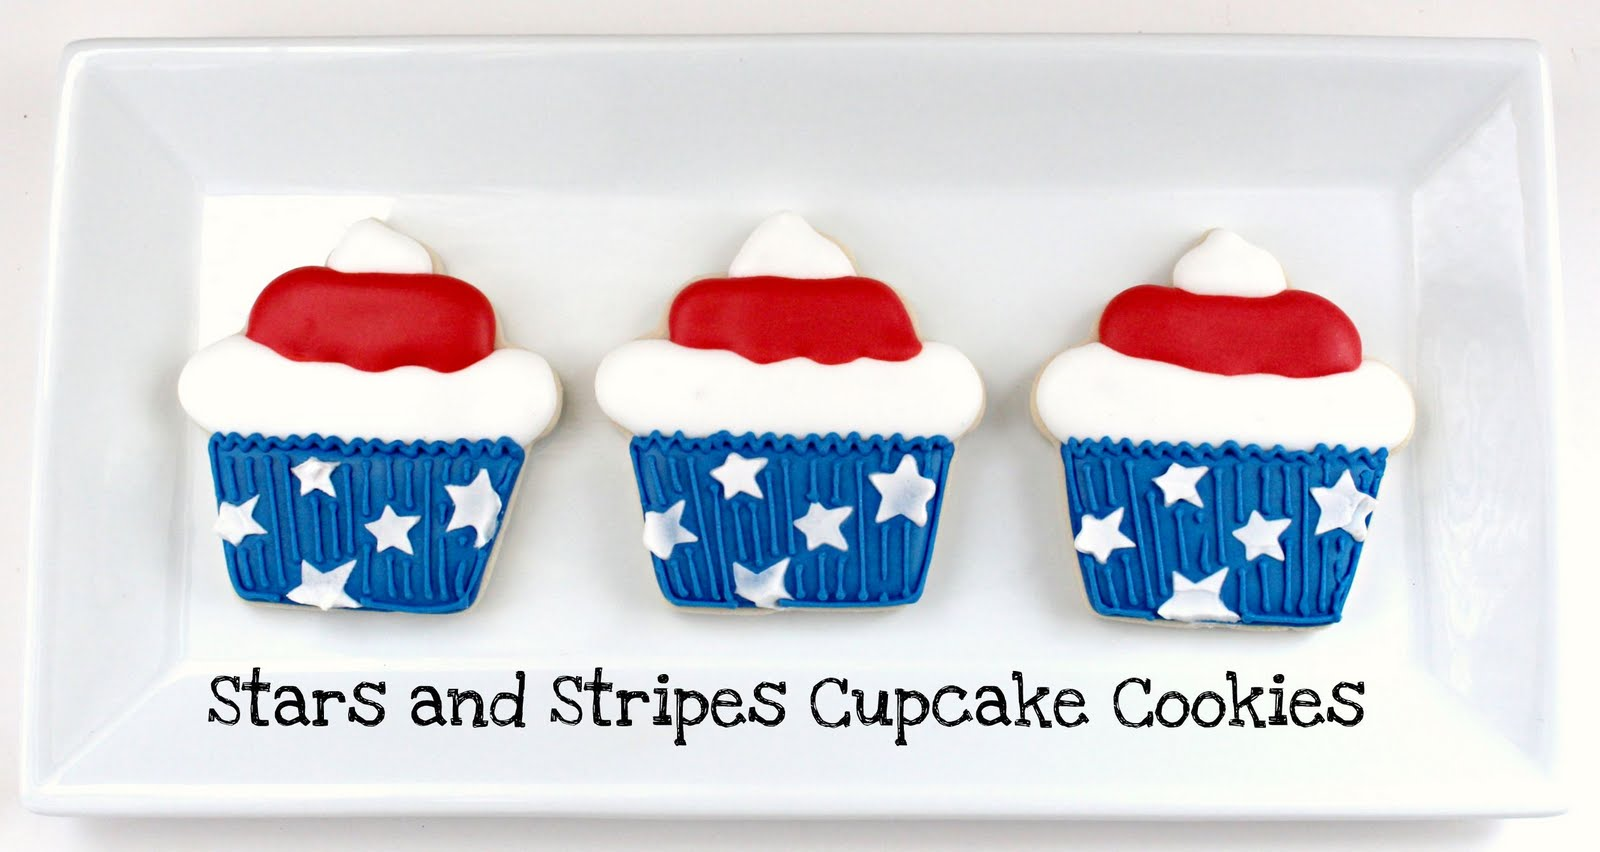 3 Stars and Stripes Cupcake Cookies on a platter